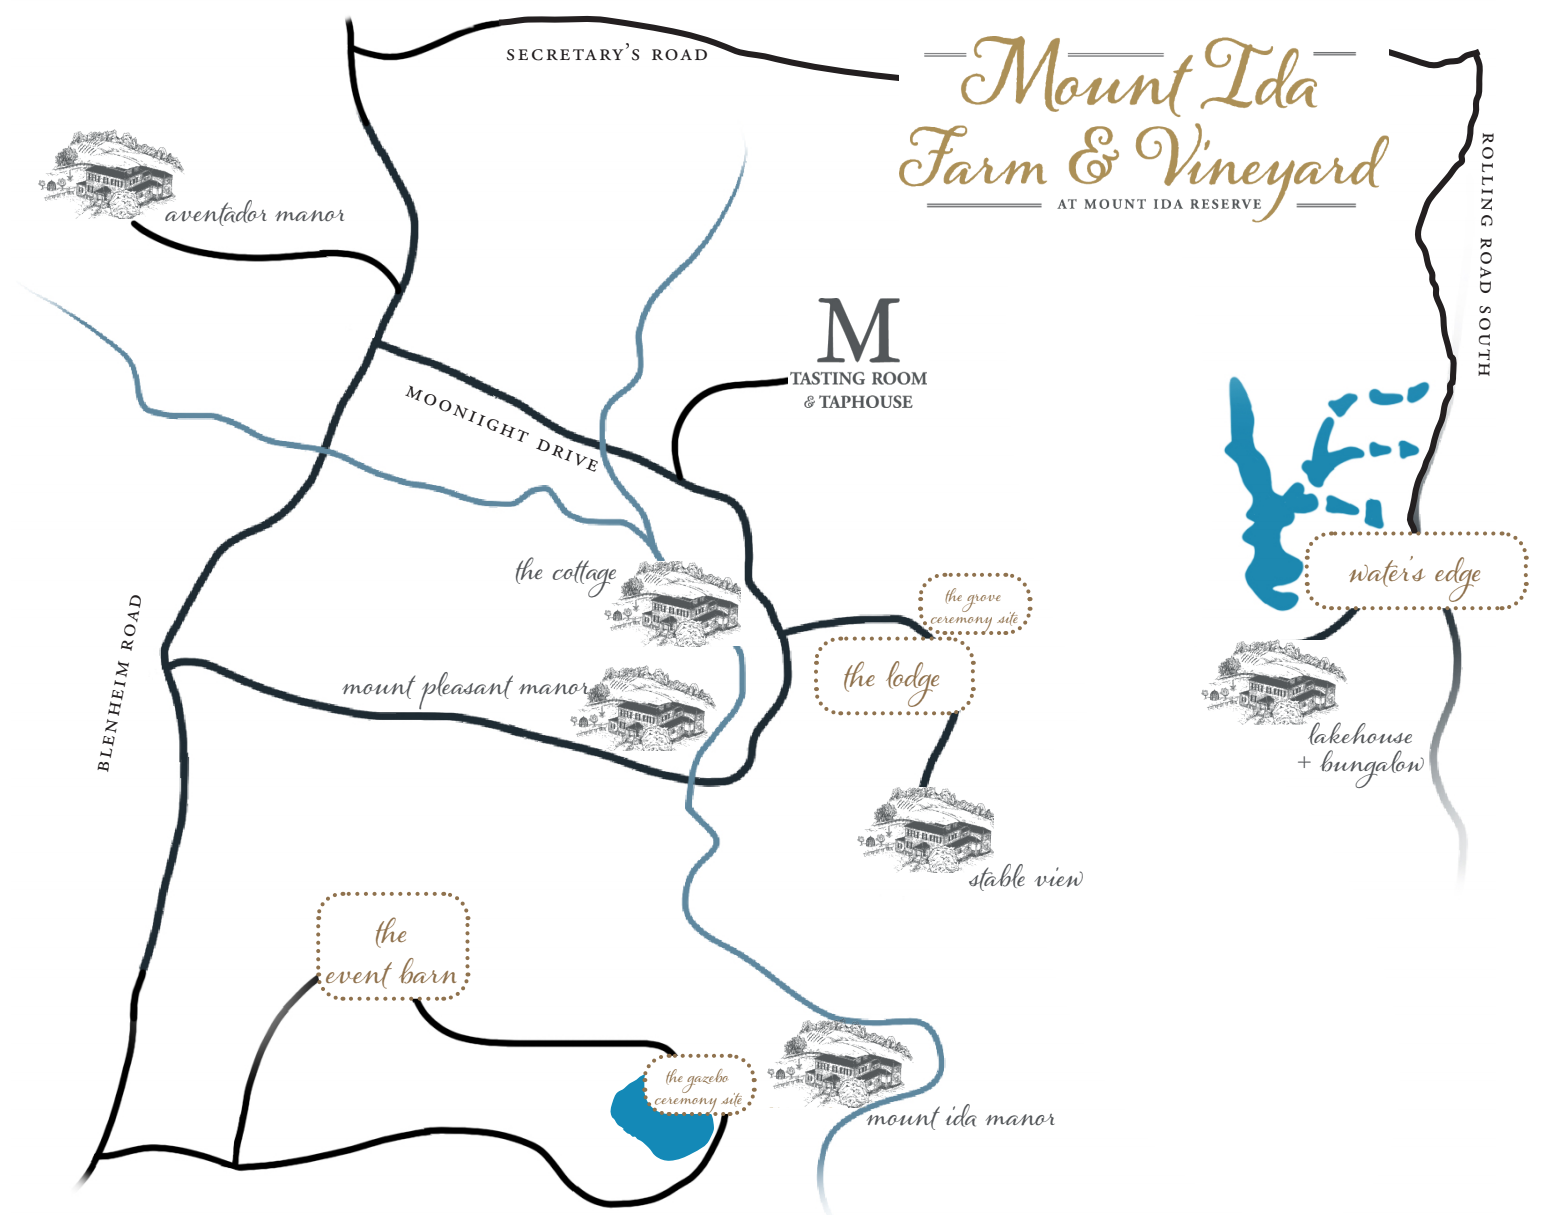 Mount Ida Farm & Vineyard map